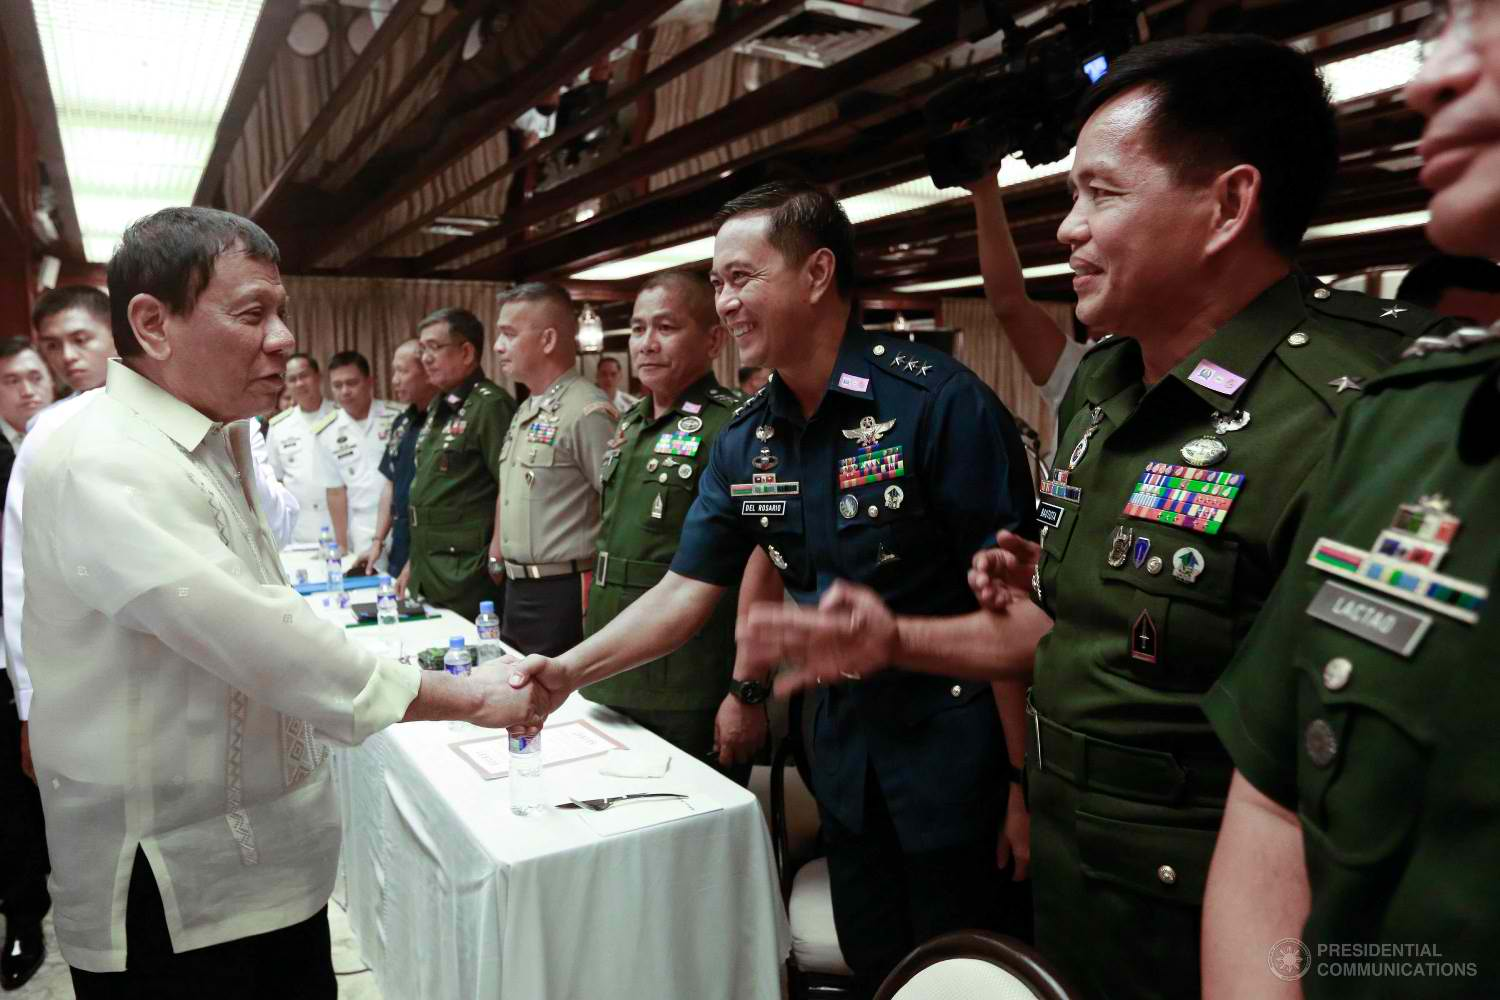 """Since the establishment of the Philippine Army 120 years ago, our history is replete with tales of our soldiers' great sacrifices and significant victories to best protect our people and our national sovereignty,"" the President said in his speech at the Philippine Army headquarters in Fort Bonifacio on Tuesday, April 4. (Photo: REY BANIQUET/Presidential Photo)"